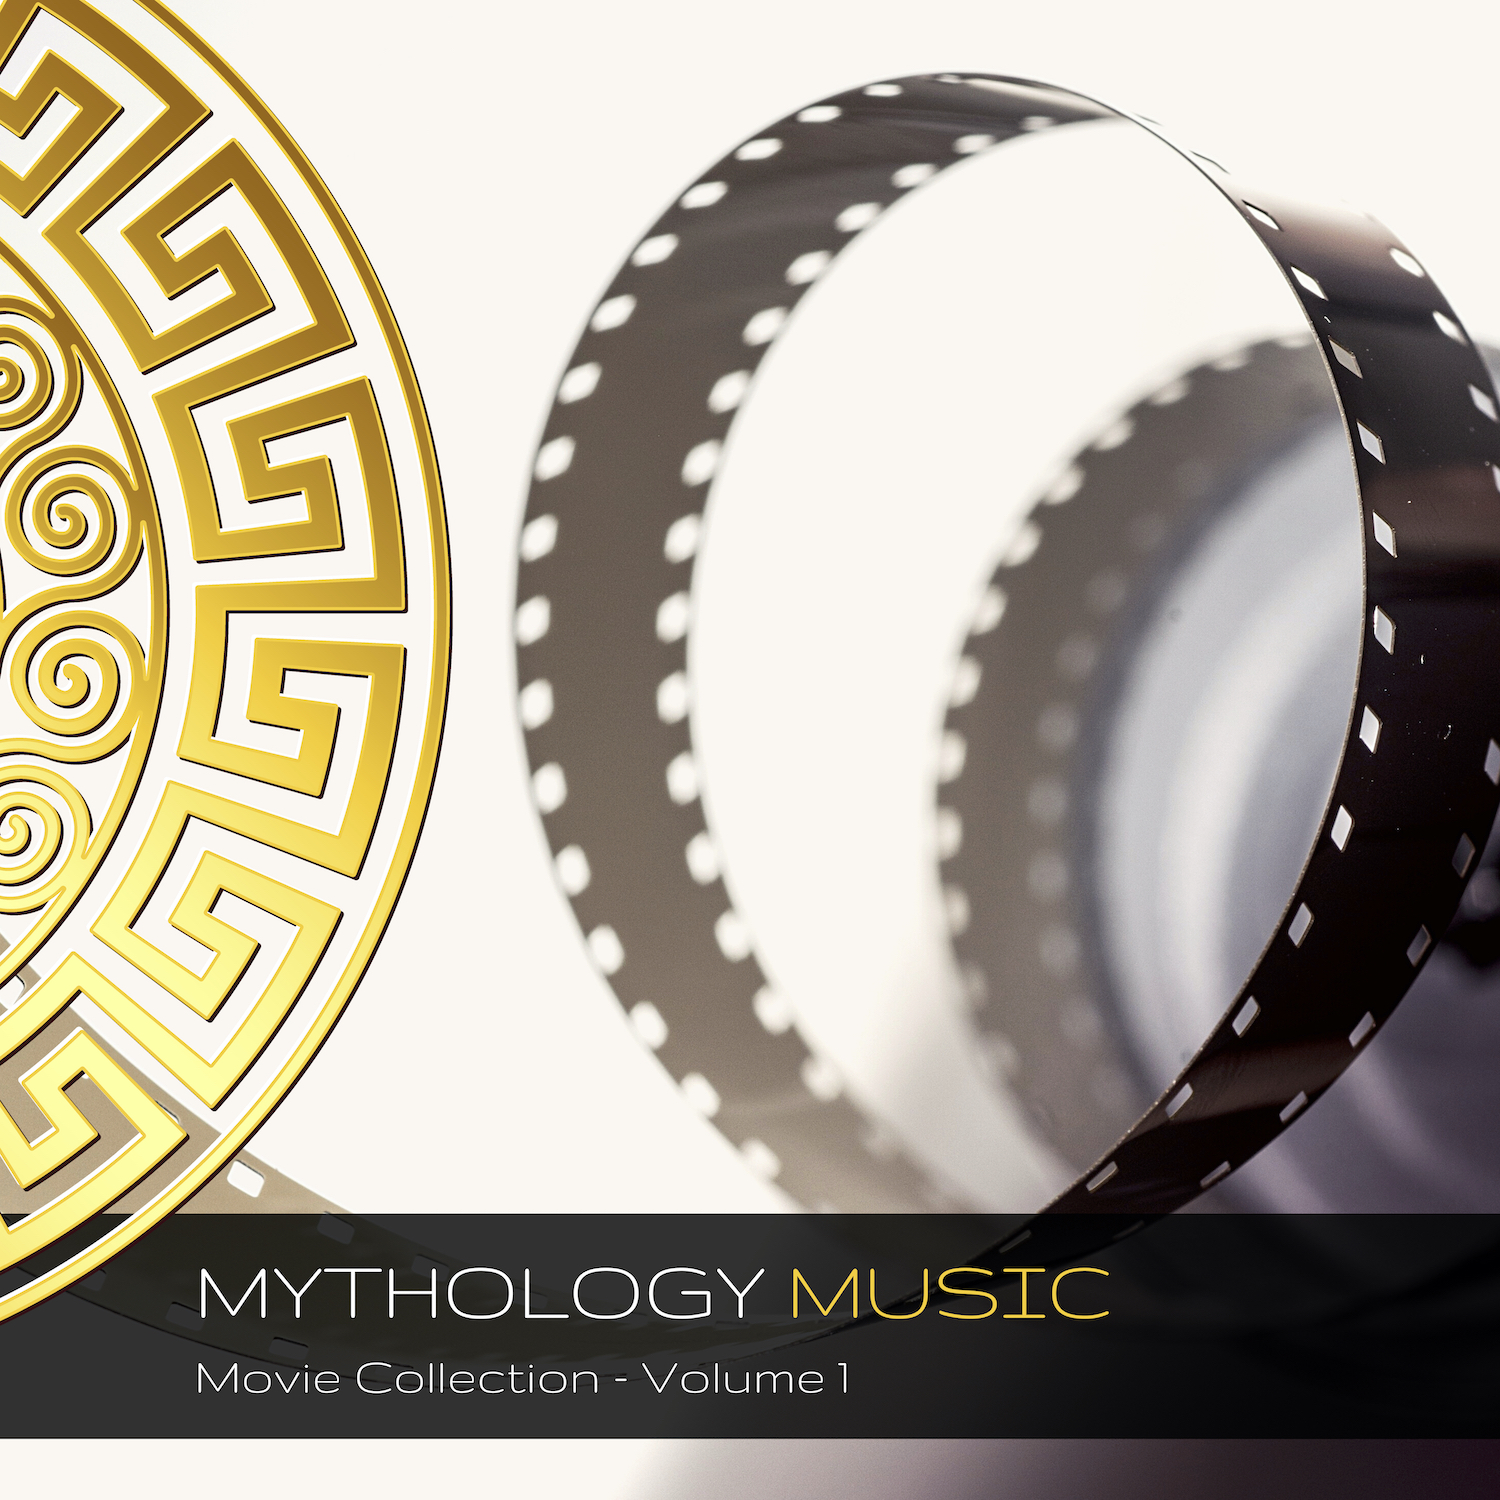 Mythology Music - Movie Collection